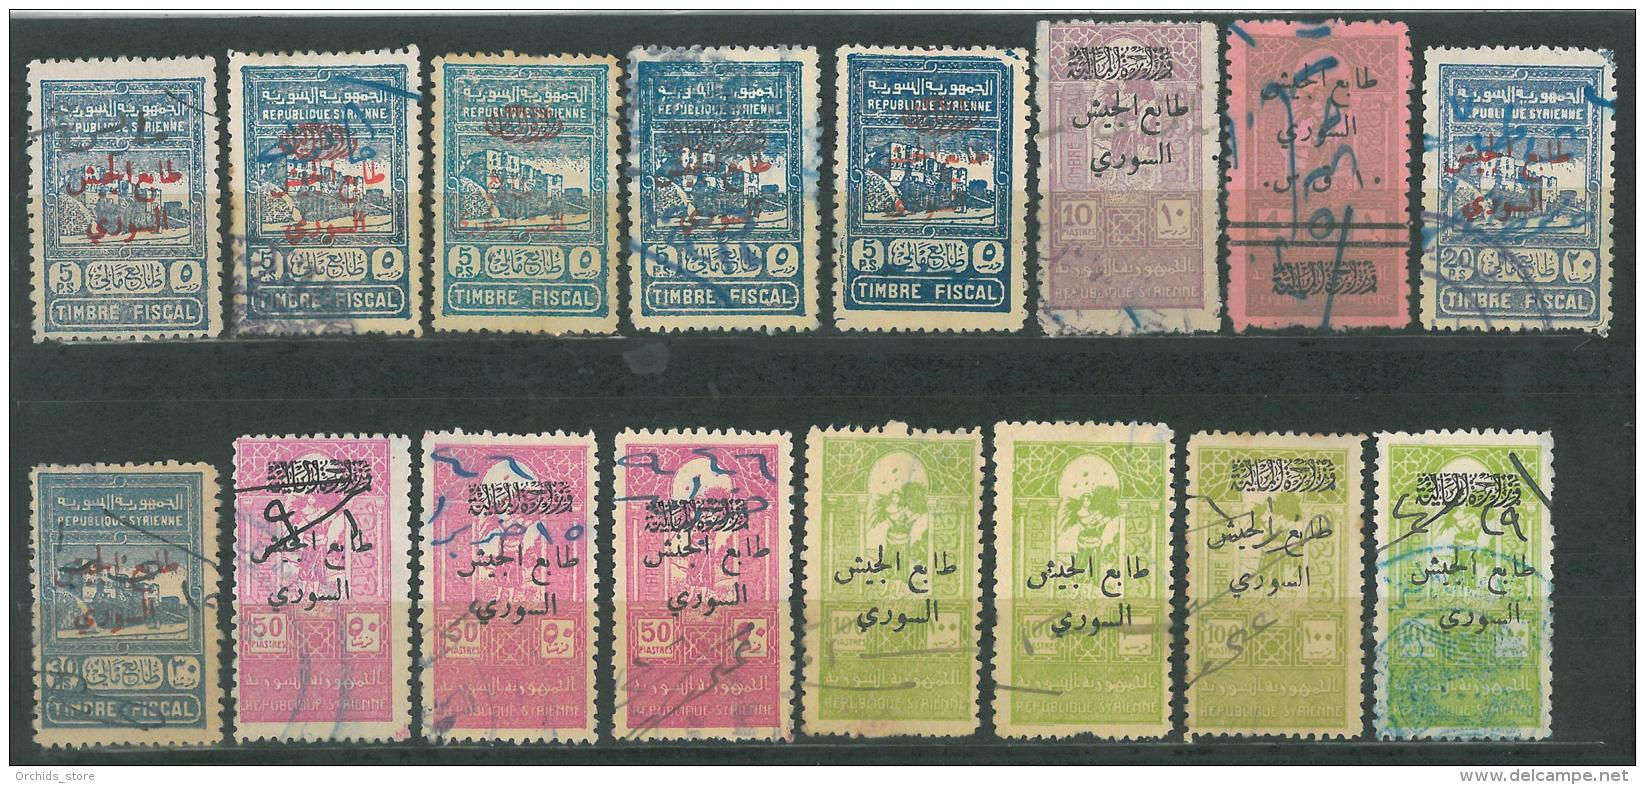 AS - SYRIA 1947-48 POSTAL TAX For The Syrian ARMY Revenue Stamps - 16 Diff - Syria